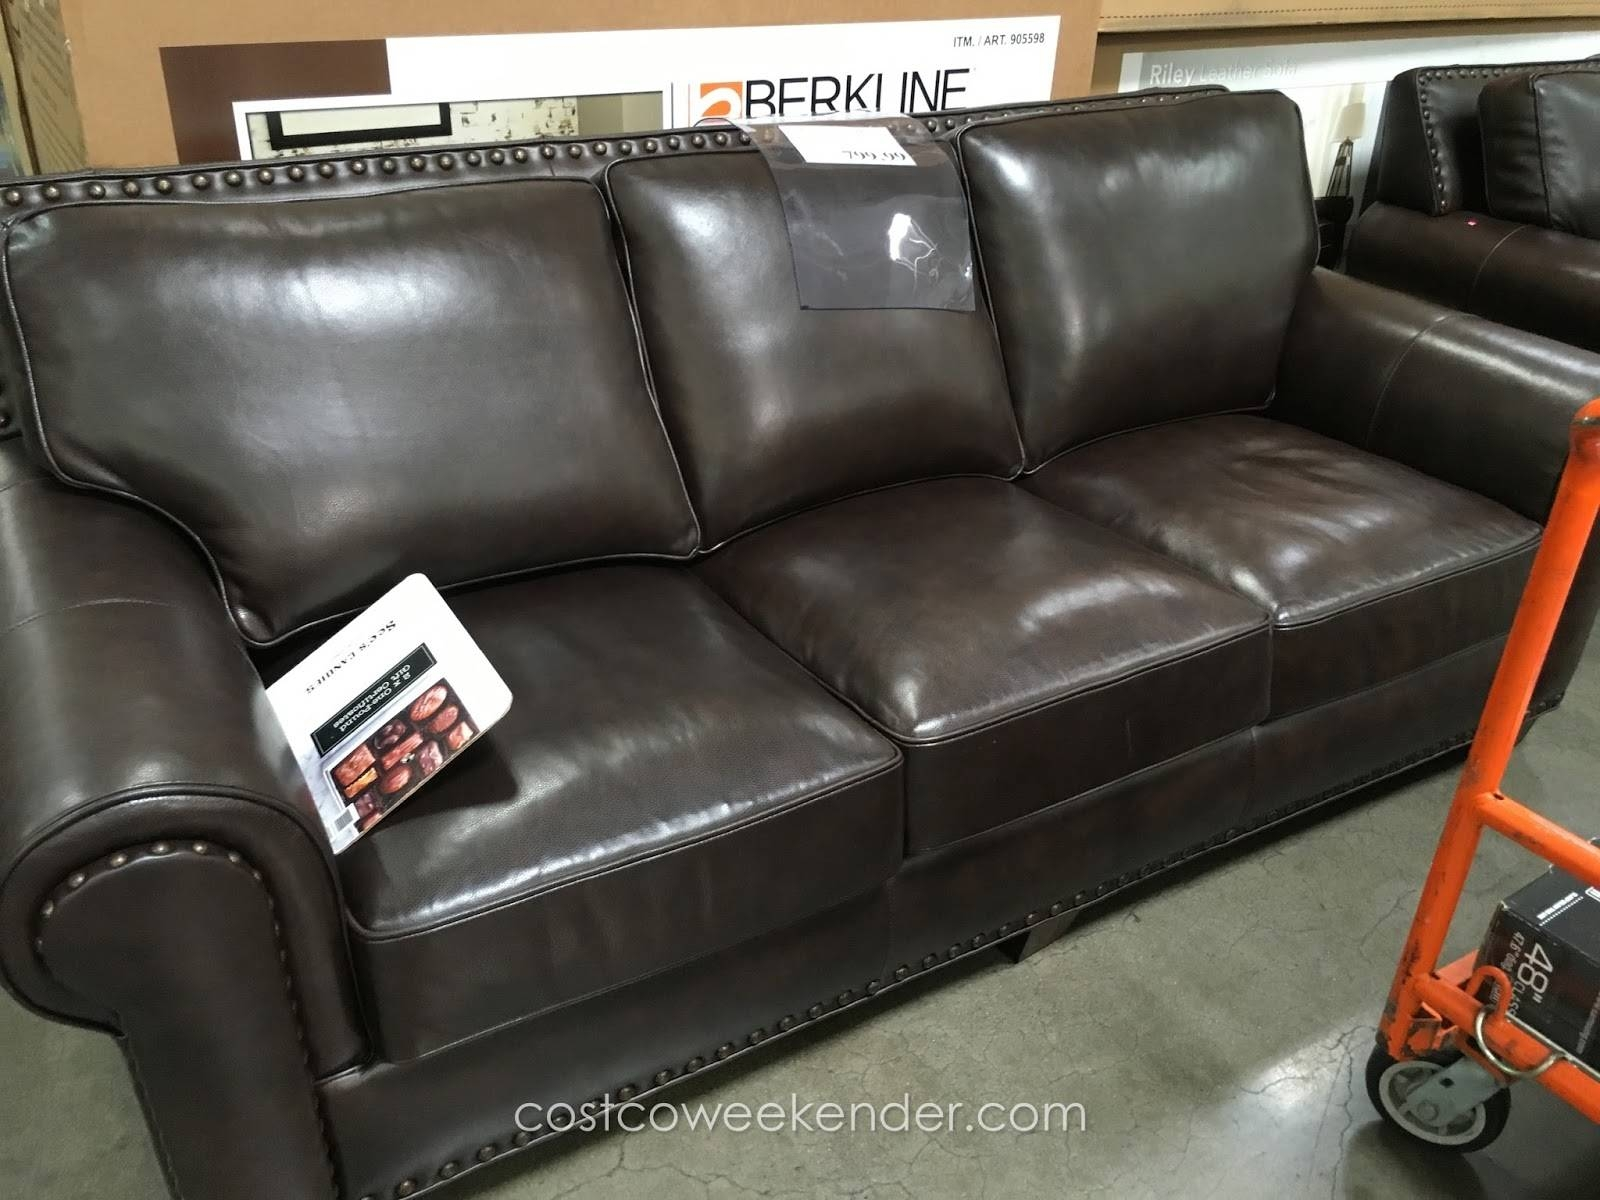 Furniture & Sofa: Enjoy Your Holiday With Costco Home Theater inside Berkline Sofa Recliner (Image 15 of 30)